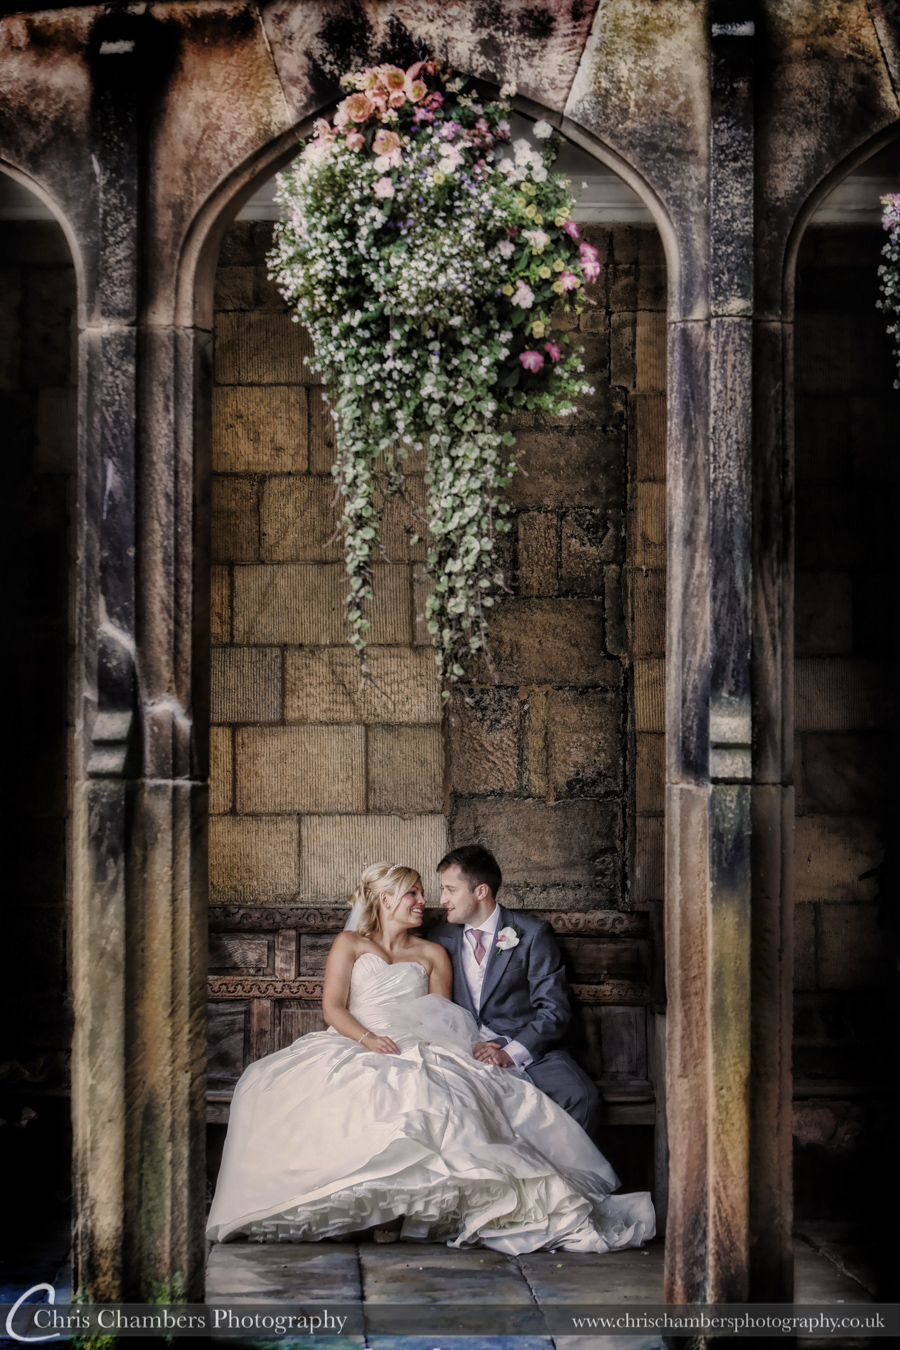 Ripley Castle wedding photographer | Ripley castle wedding photos in Harrogate | Award winning North Yorkshire wedding photography | Harrogate wedding photography | Ripley Castle wedding photography